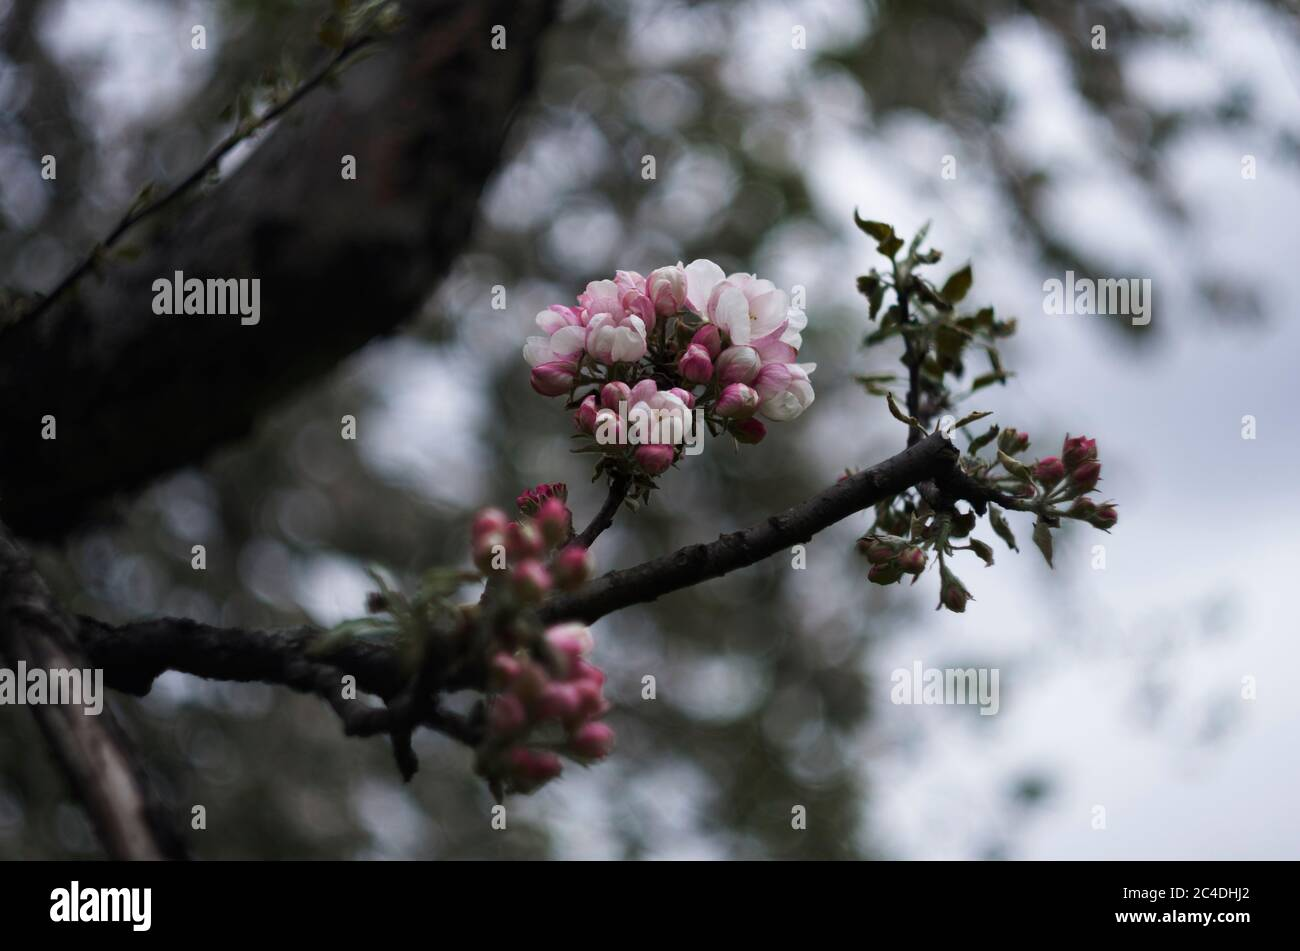 Branch of the flowering apple tree in the cloudy day, june Sainy-Petersburg, park, garden, closeup flowers Stock Photo